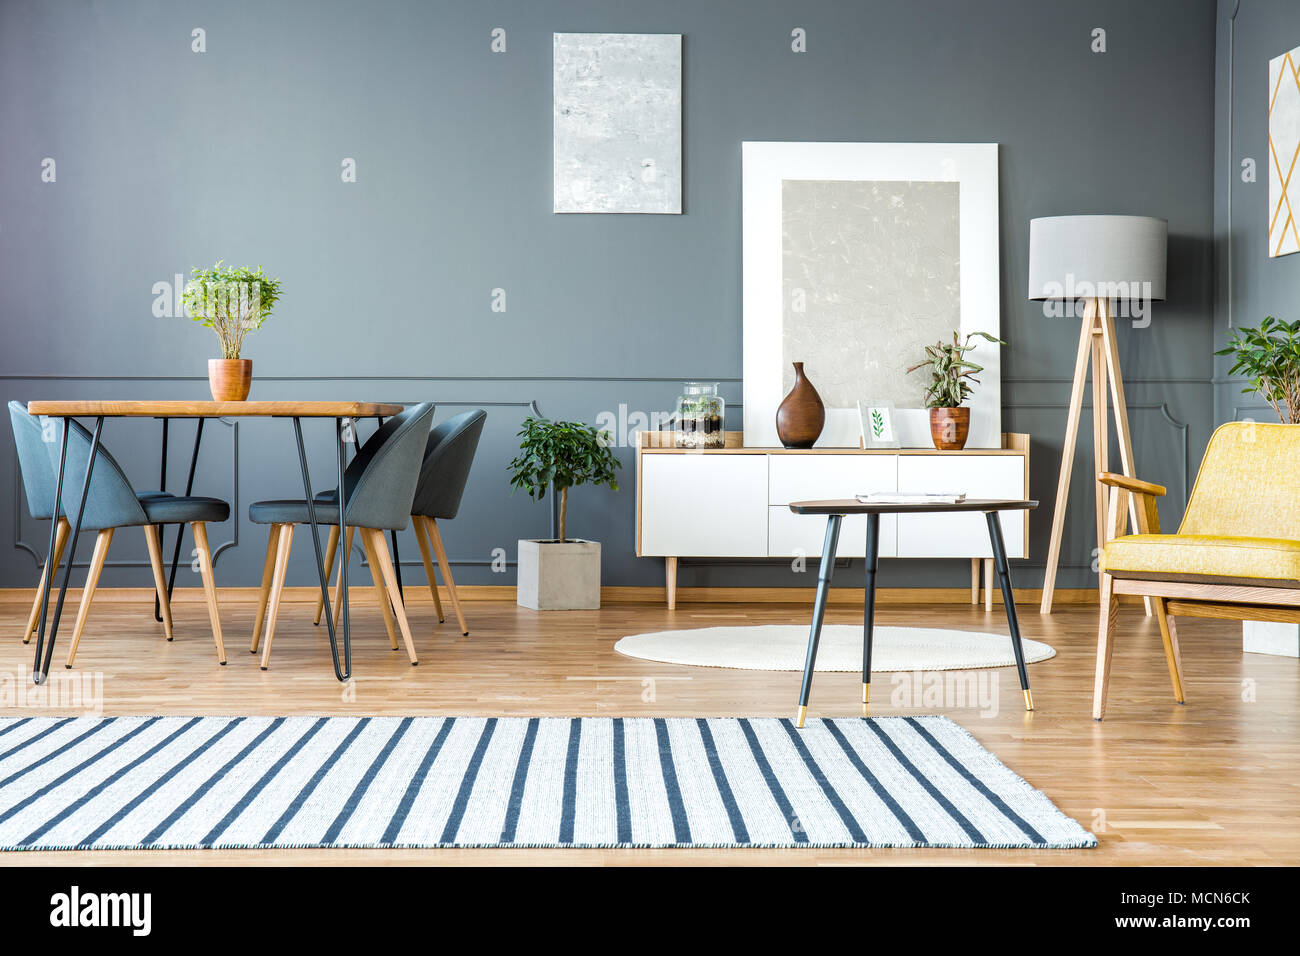 striped carpet stock photos striped carpet stock images alamy. Black Bedroom Furniture Sets. Home Design Ideas